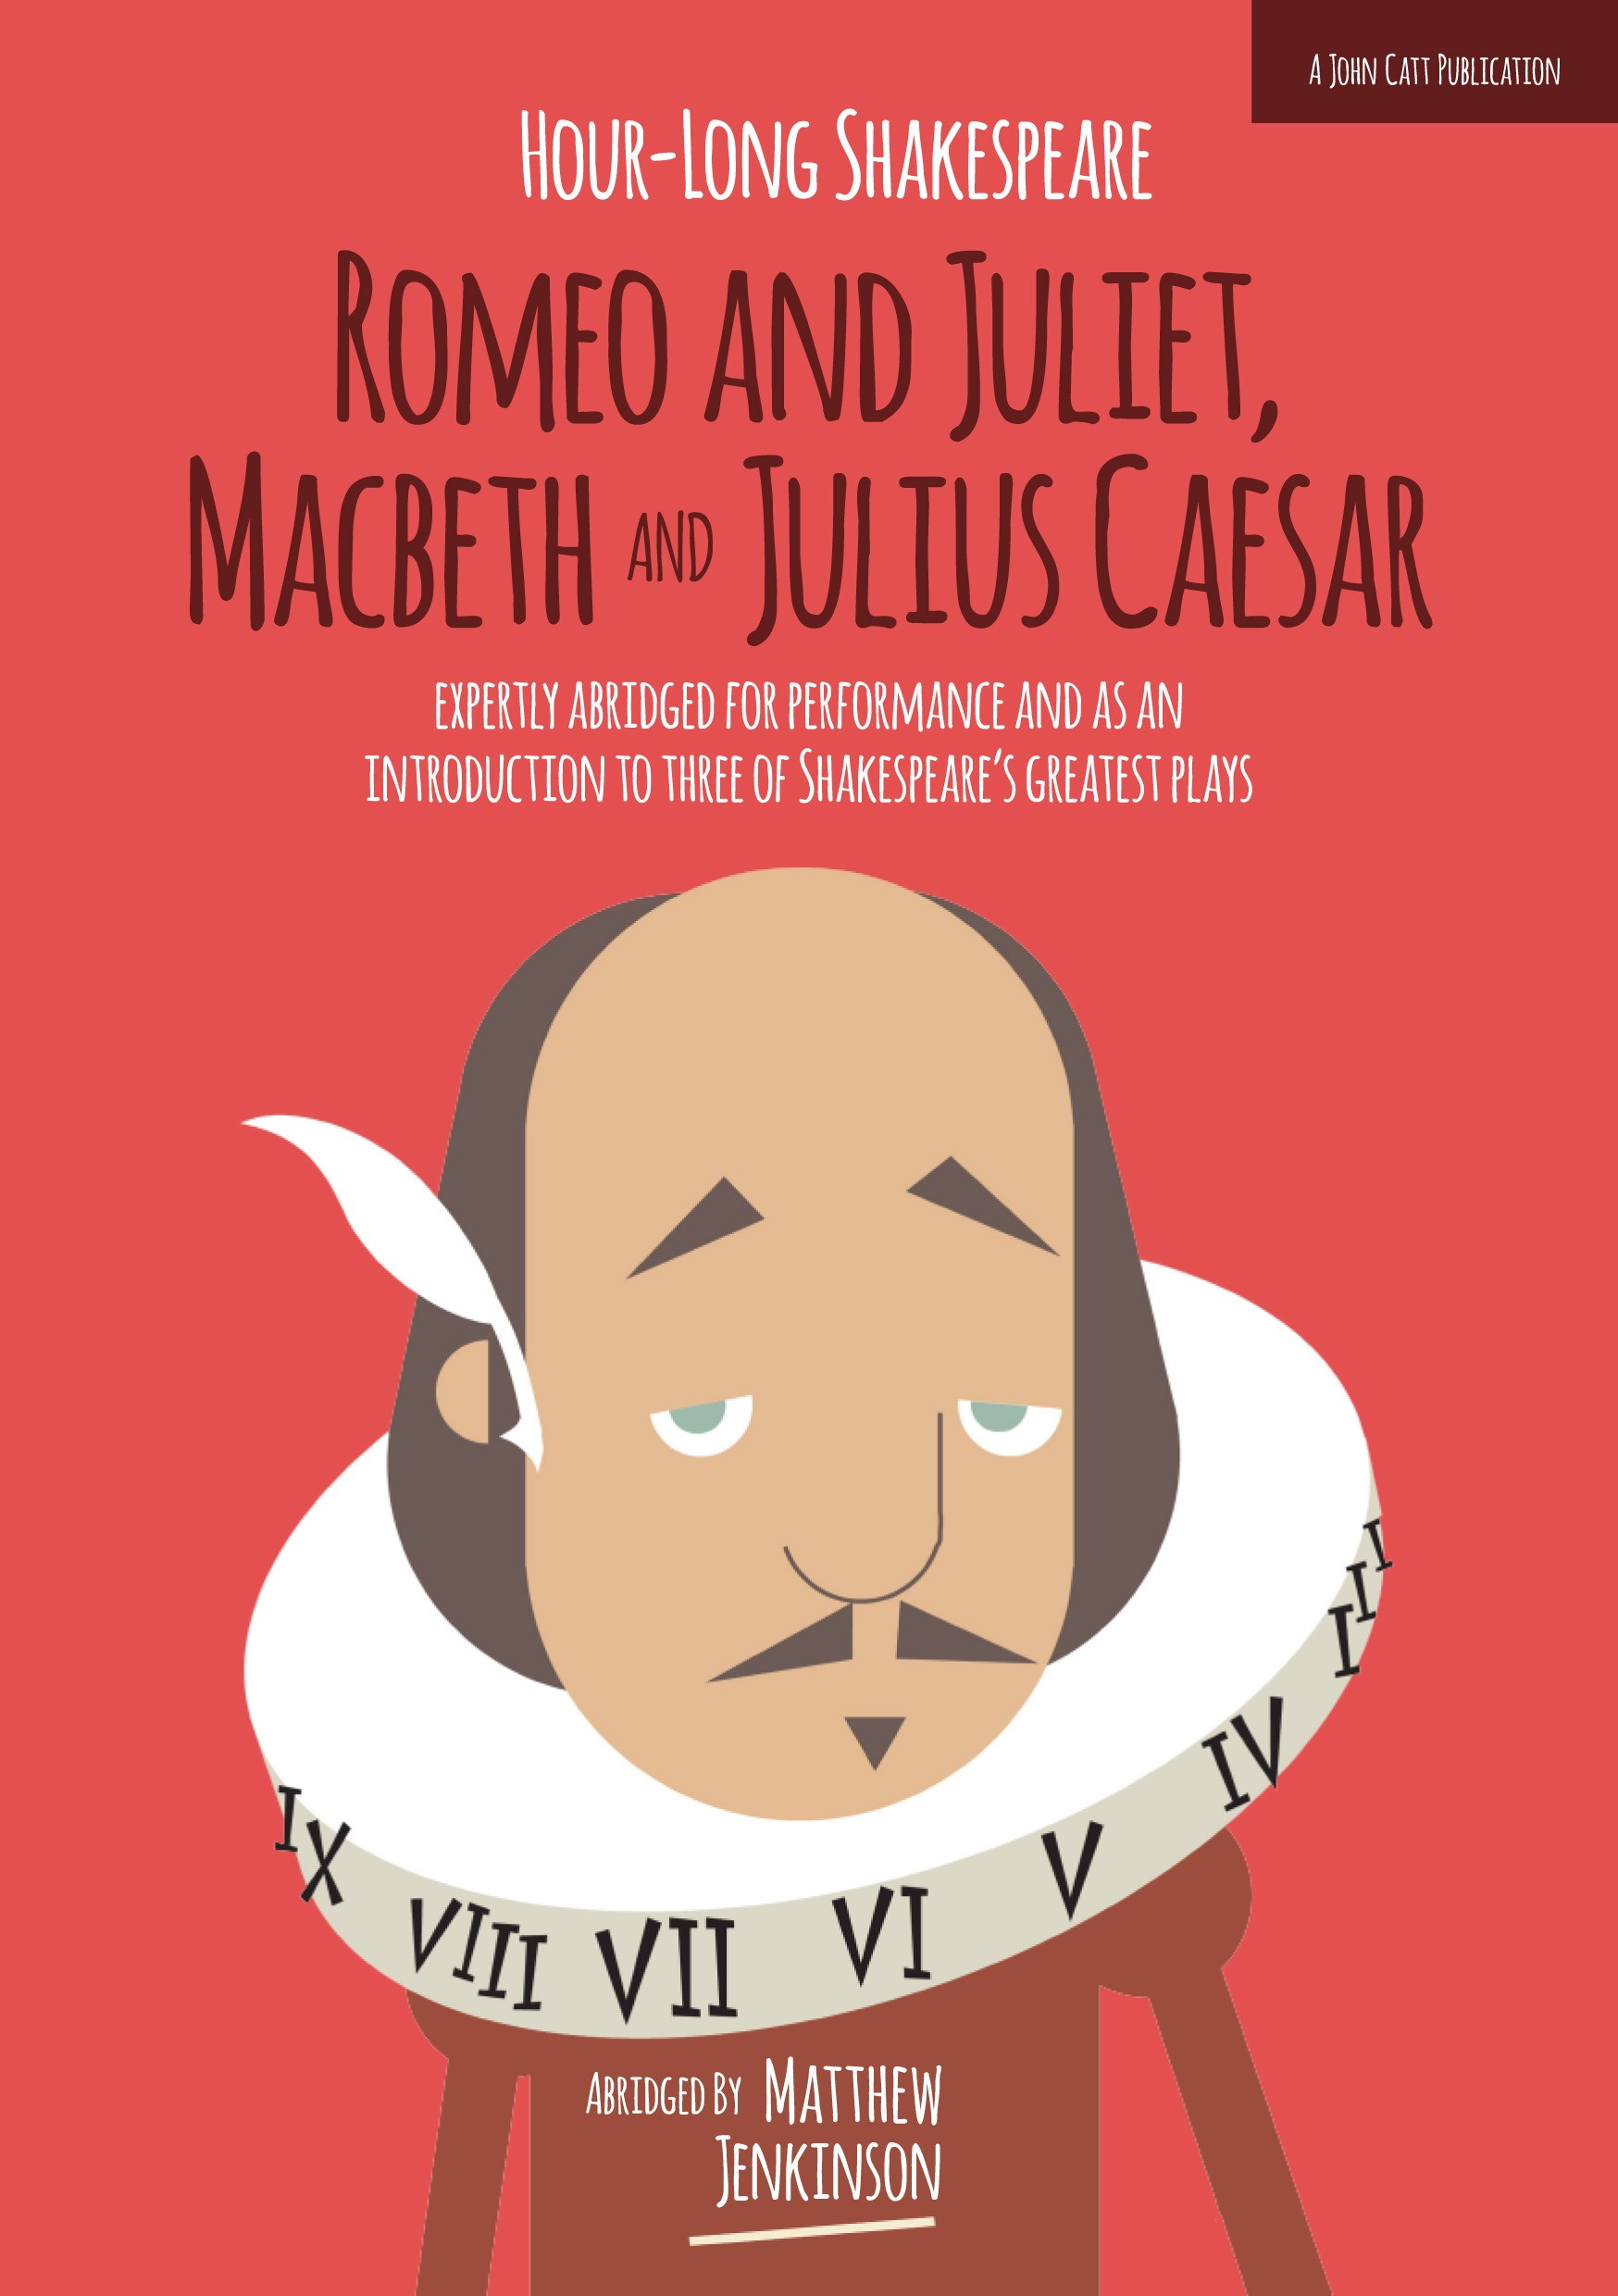 Hour-Long Shakespeare: Romeo and Juliet, Macbeth and Julius Caesar